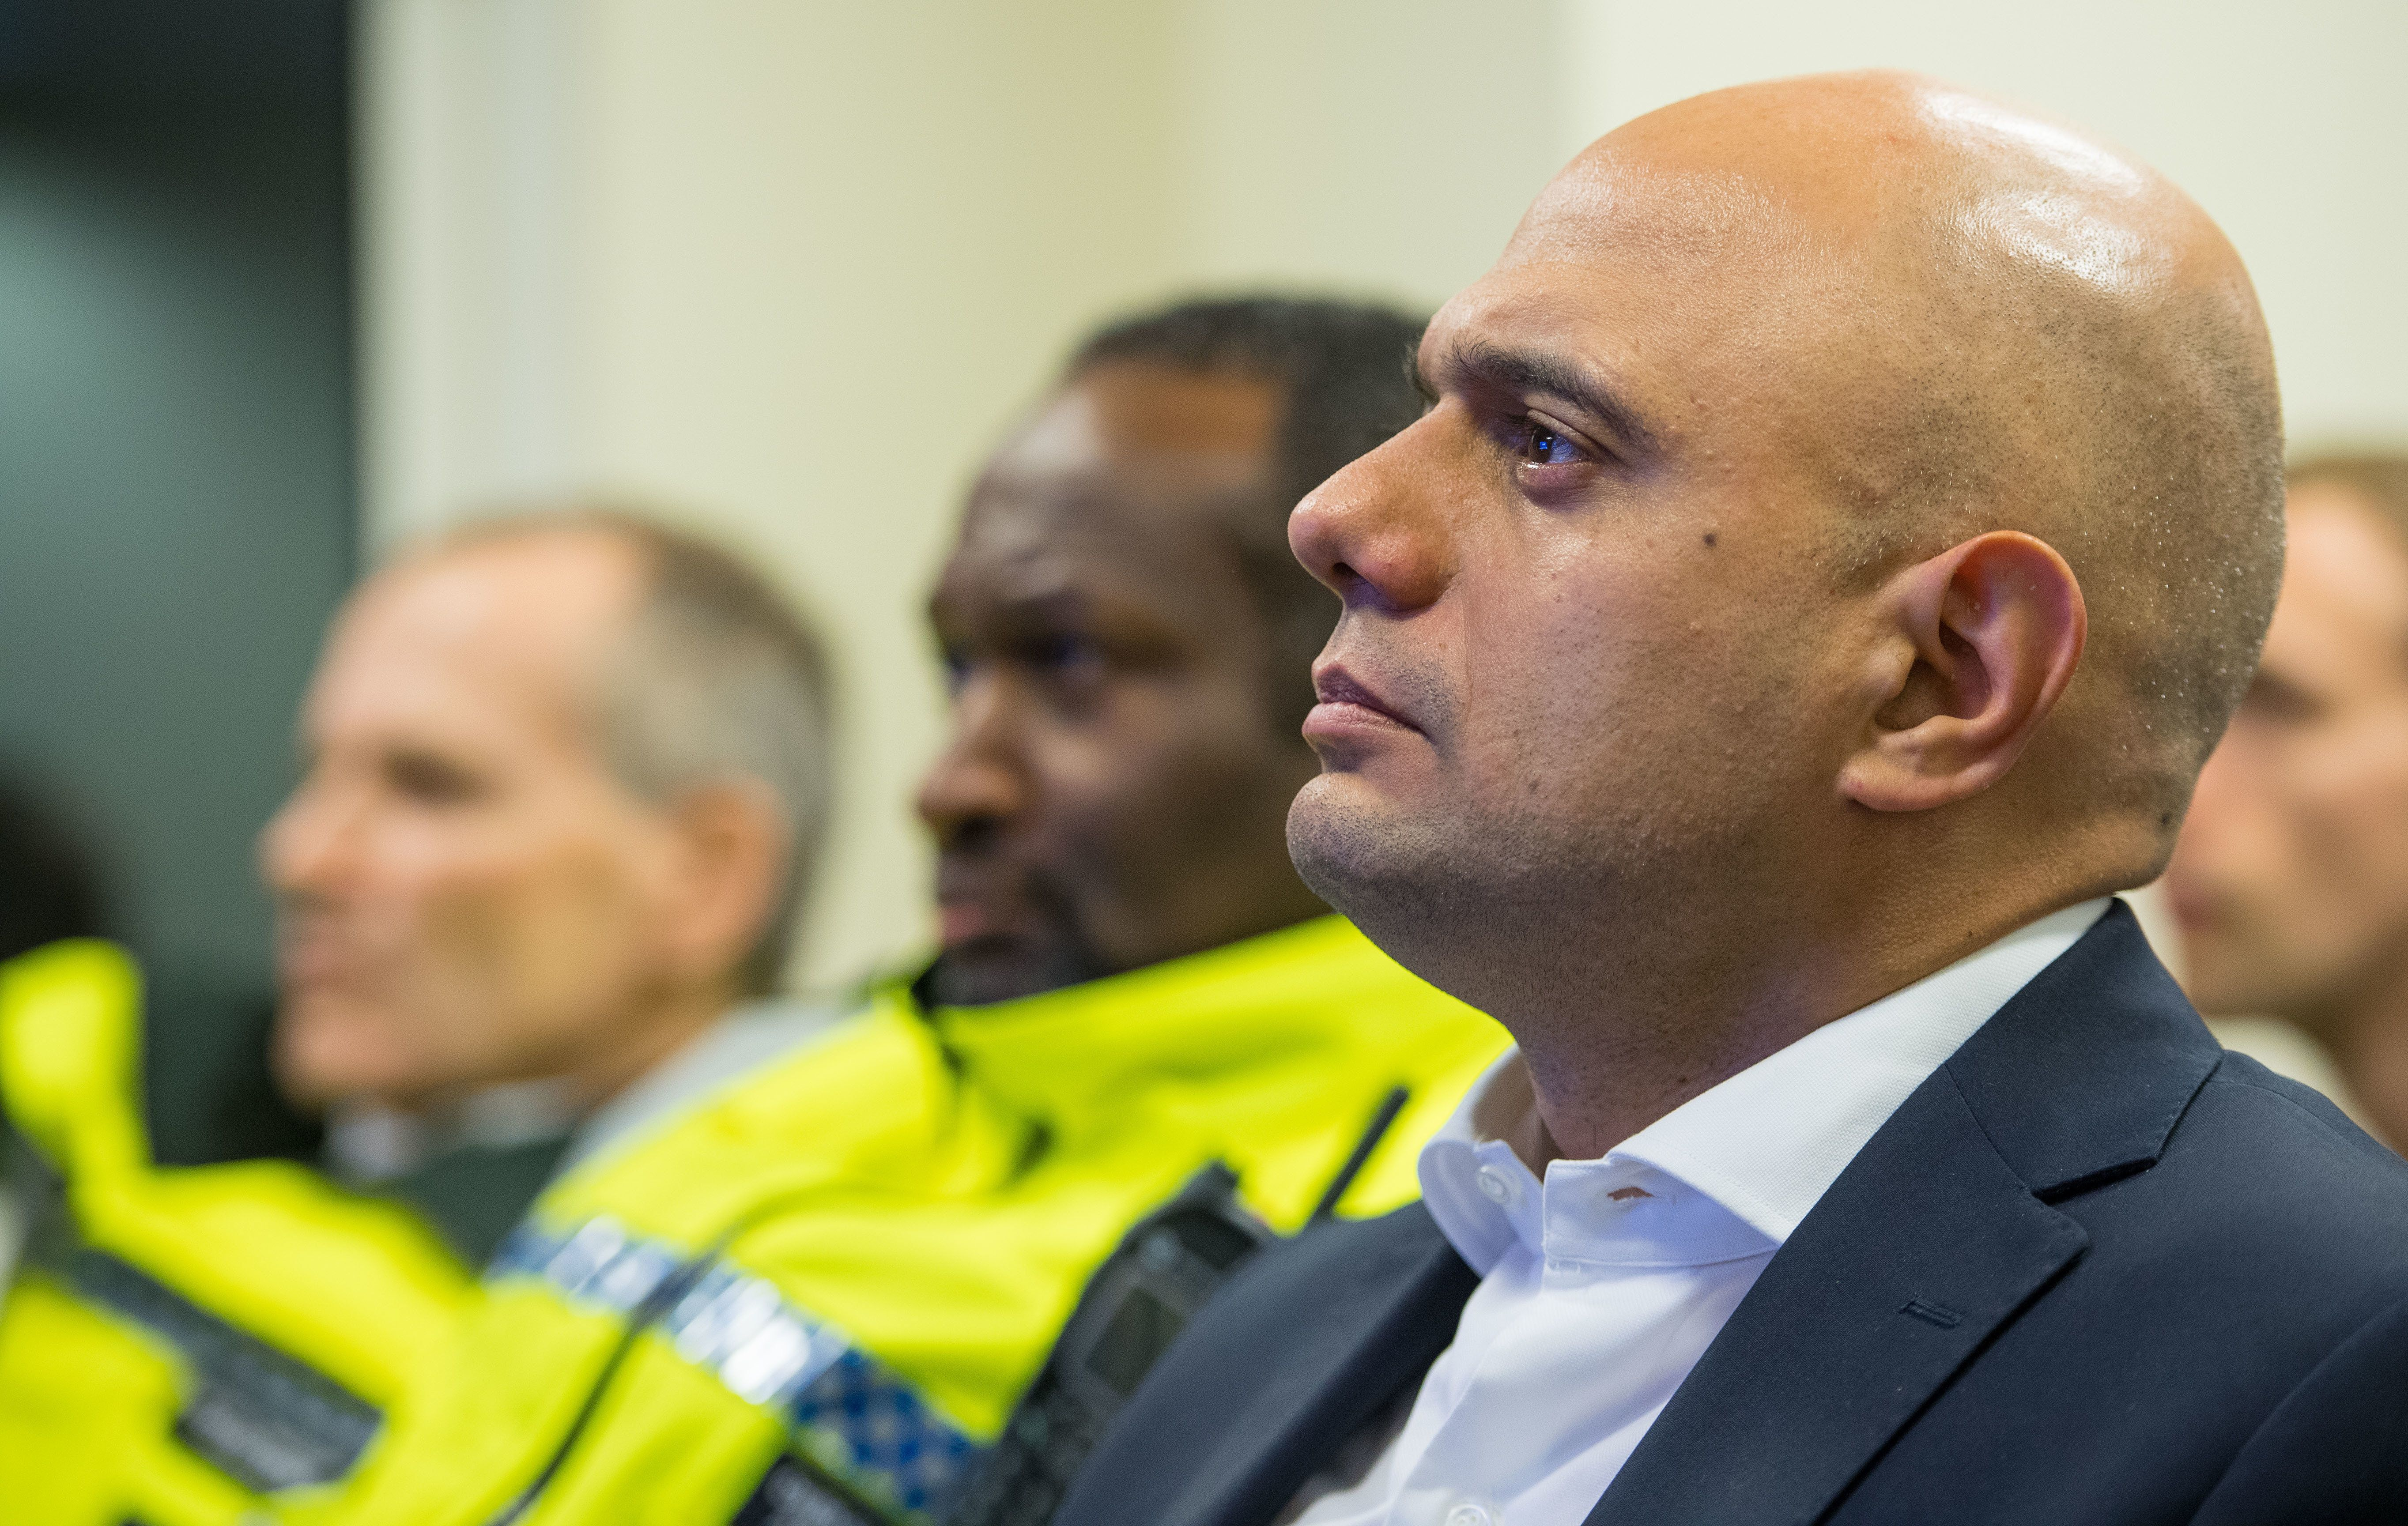 Home Secretary Sajid Javid has failed to deliver on promises of a real-terms increase in police